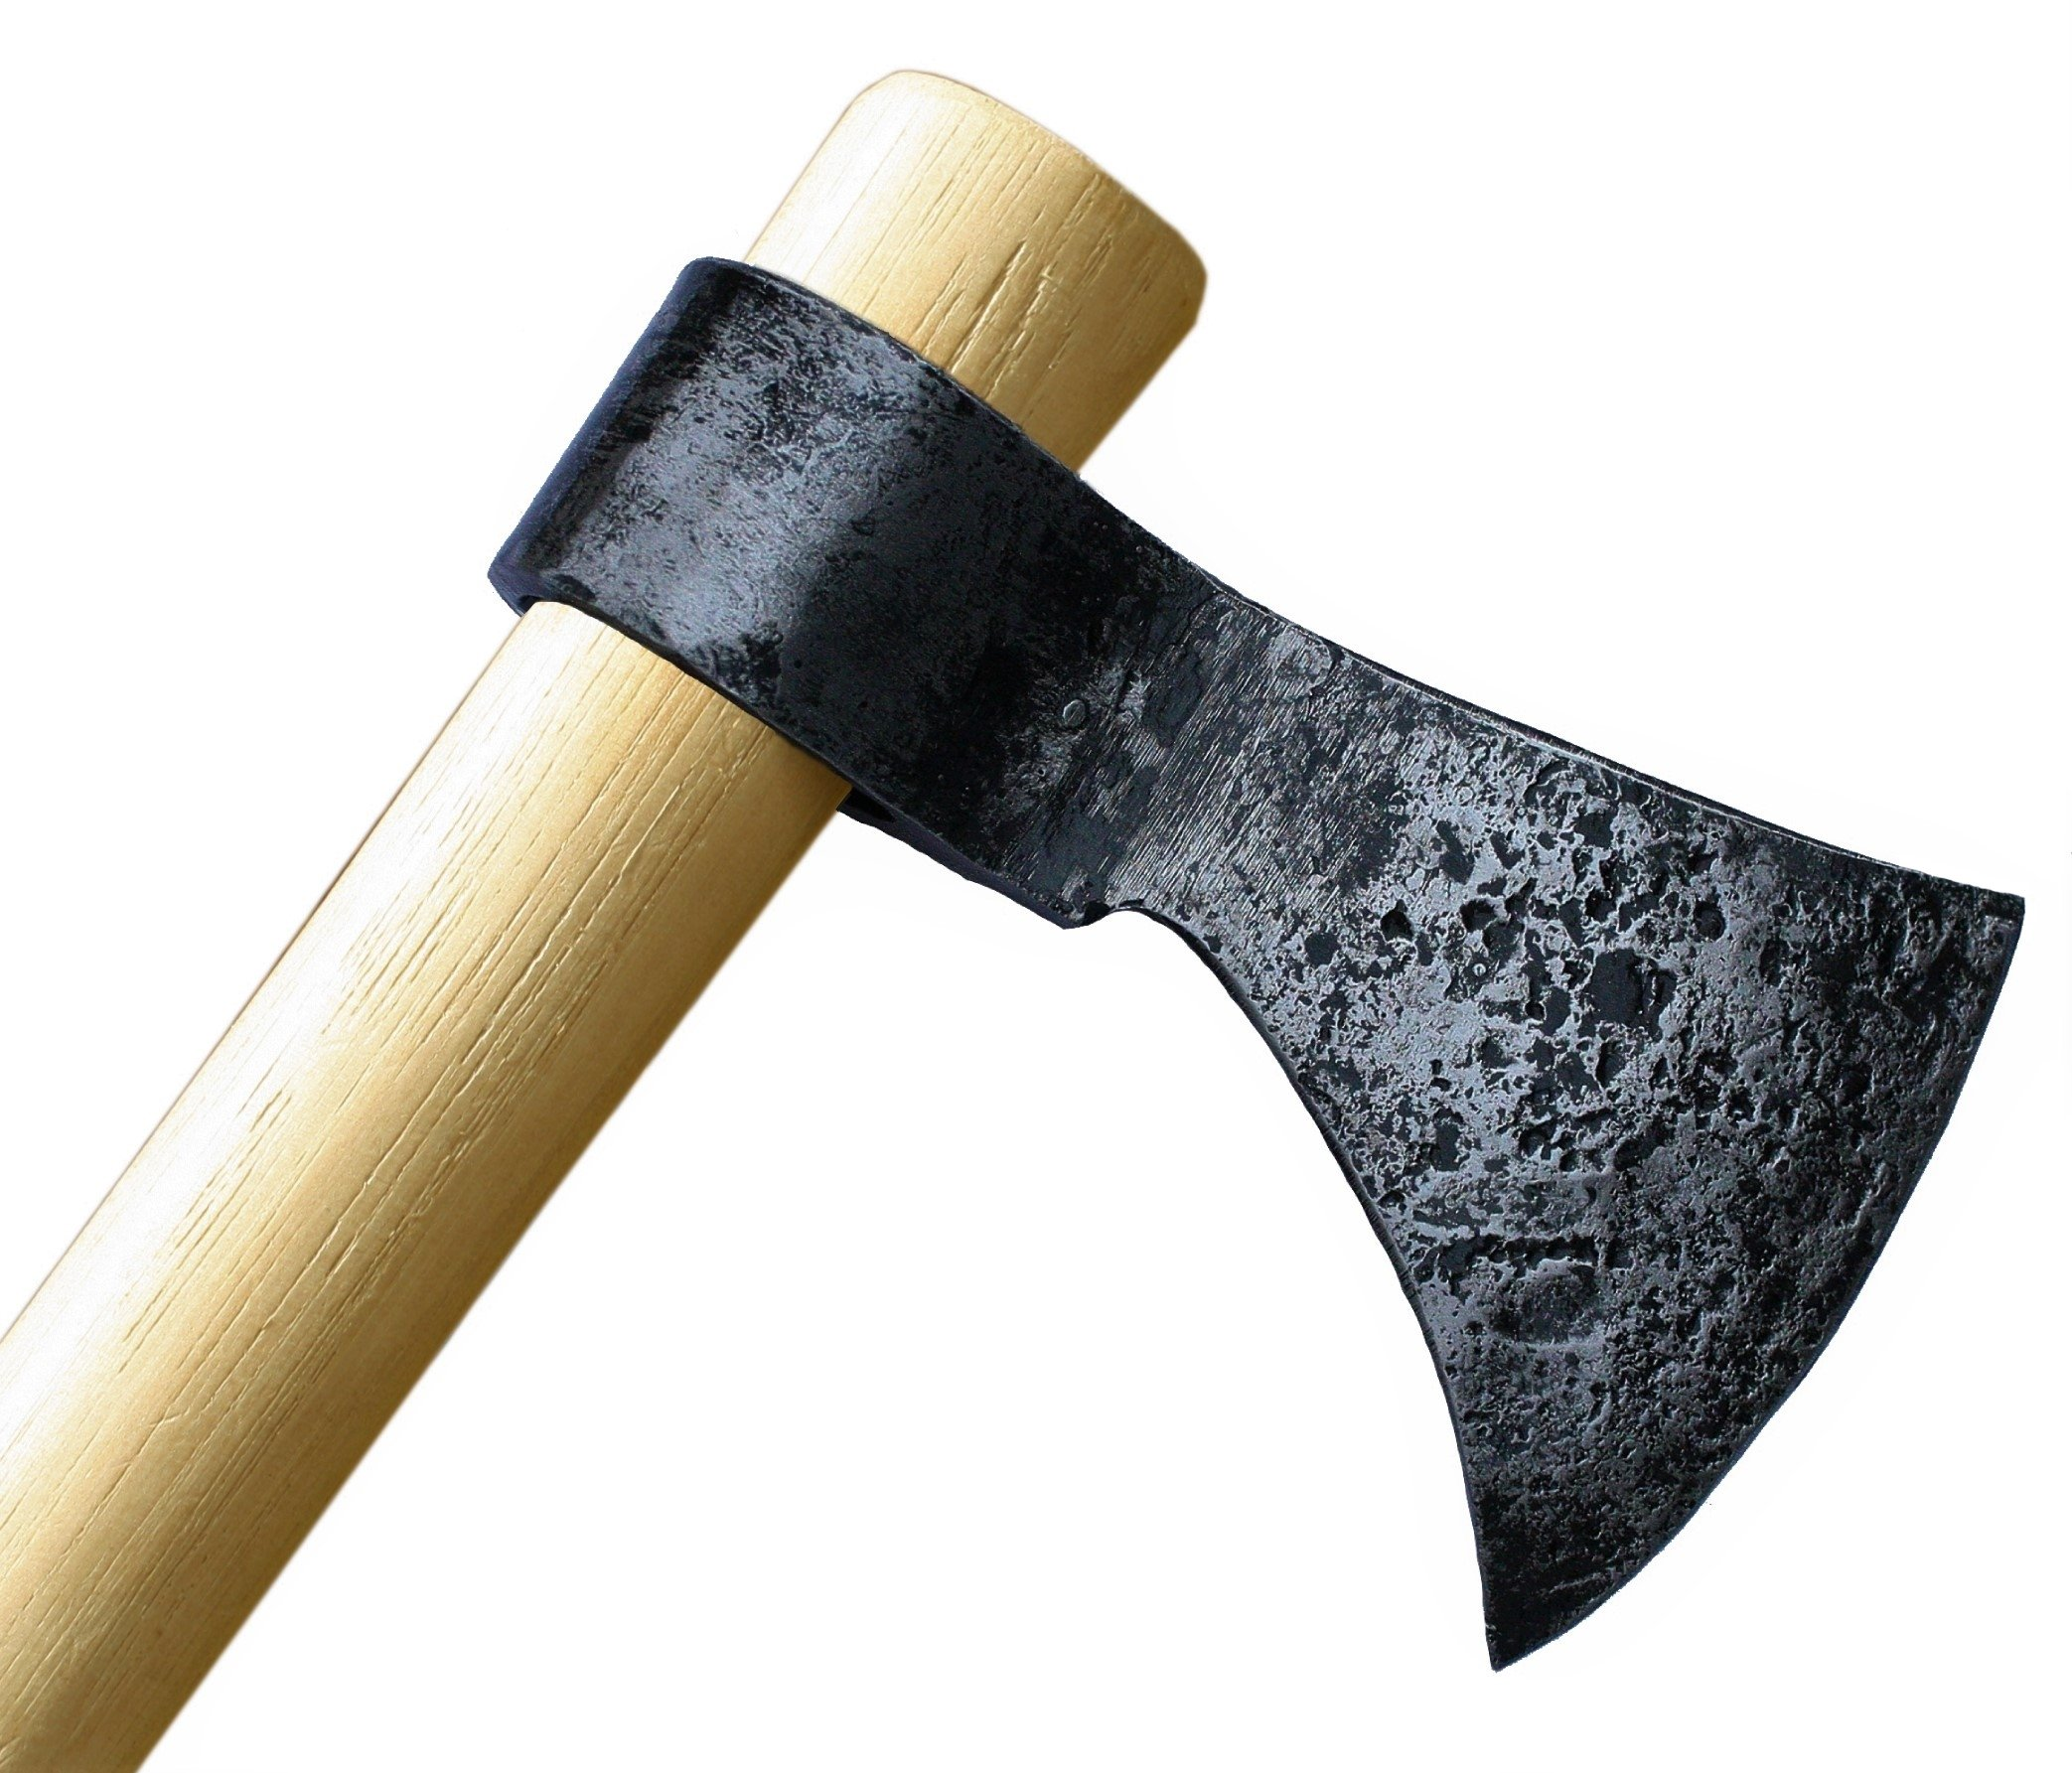 Throwing Axe - Win Your Next Viking Throwing Tomahawk Competition! 19'' Hand Forged Hatchet From High Carbon Steel, NMLRA Approved, 100% Guaranteed From Defects (Antiqued) by Thrower Supply (Image #1)